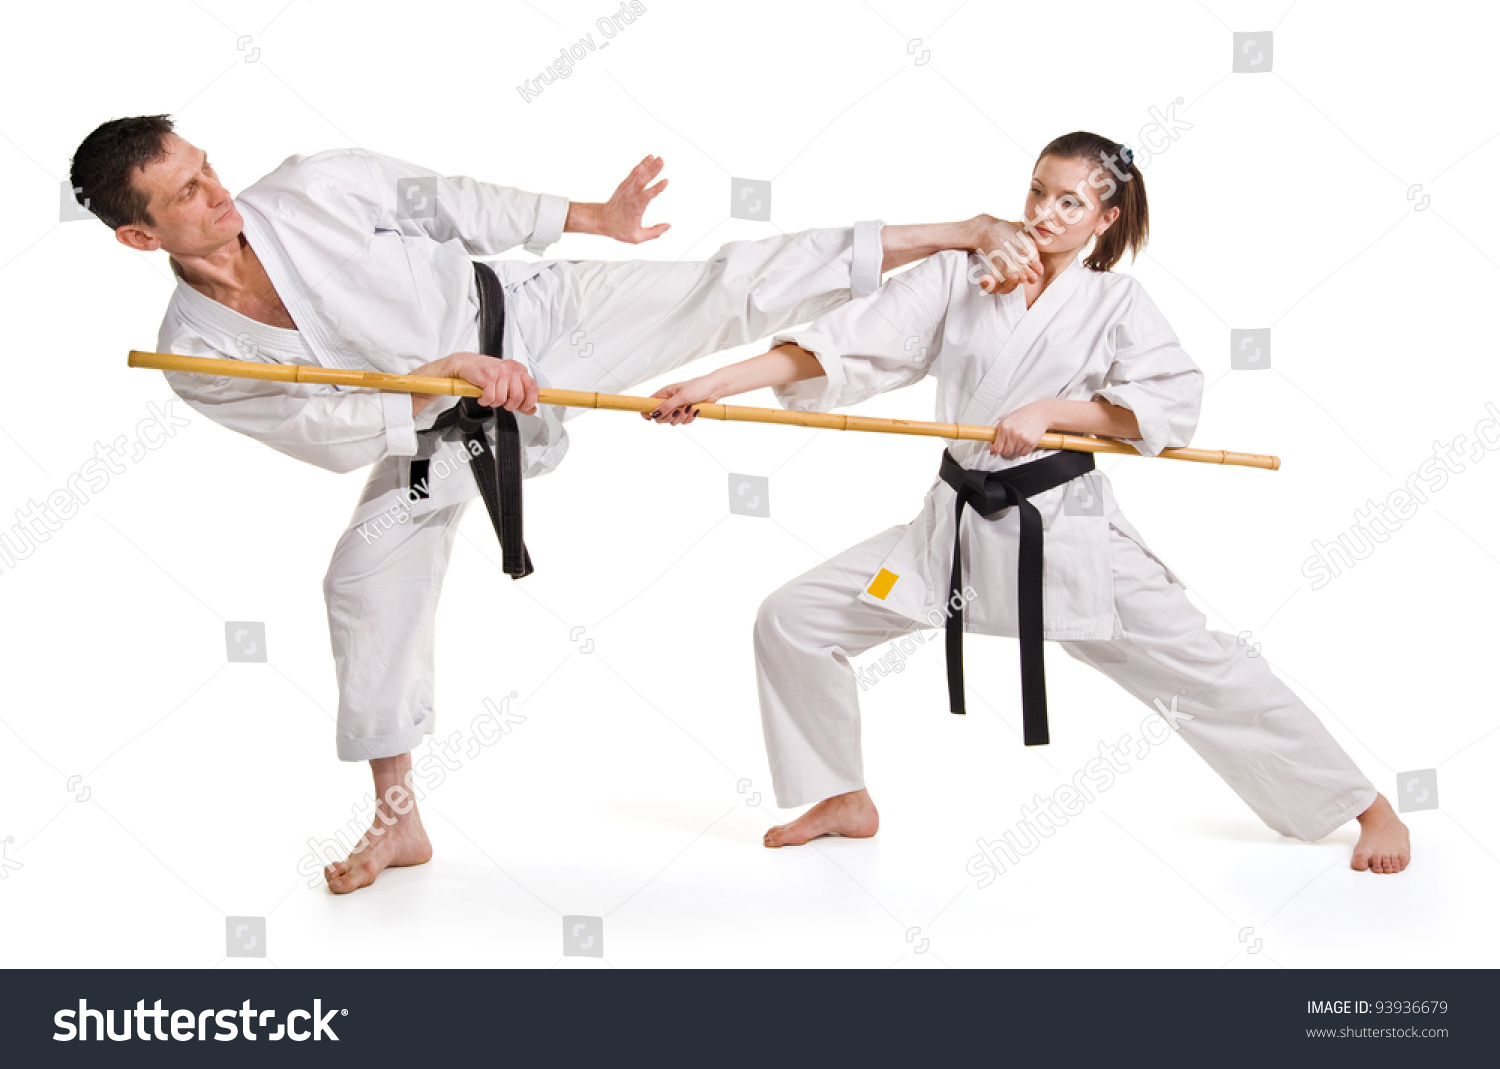 Martial arts fighting stances